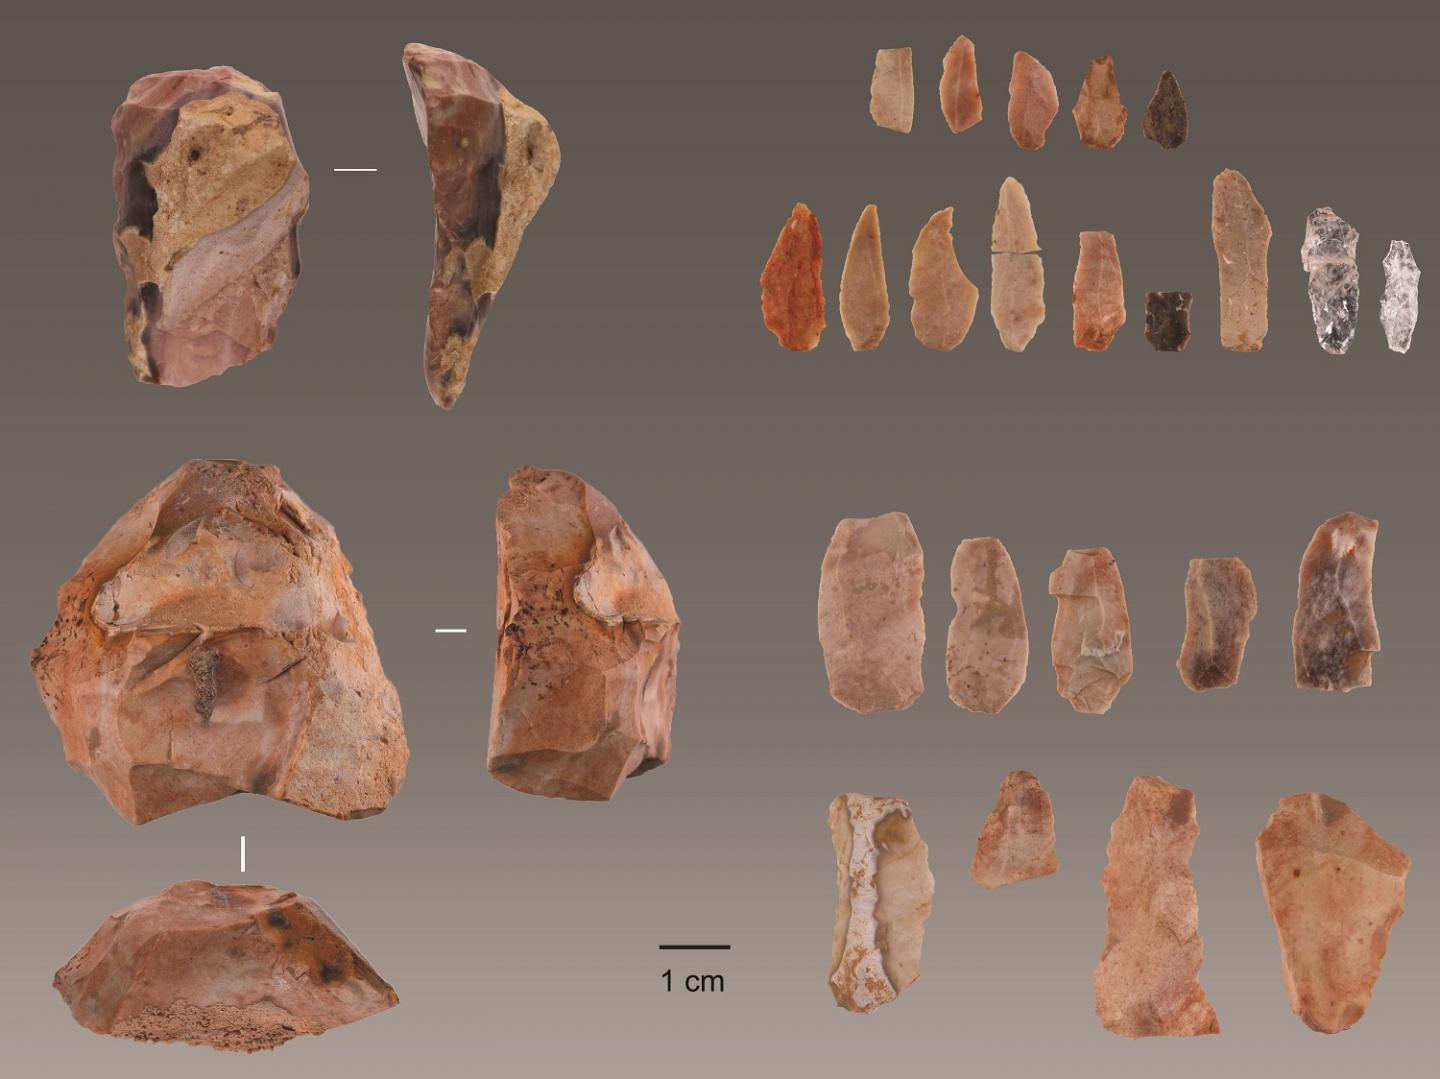 Tools discovered in Lapa do Picareiro in central Portugal.